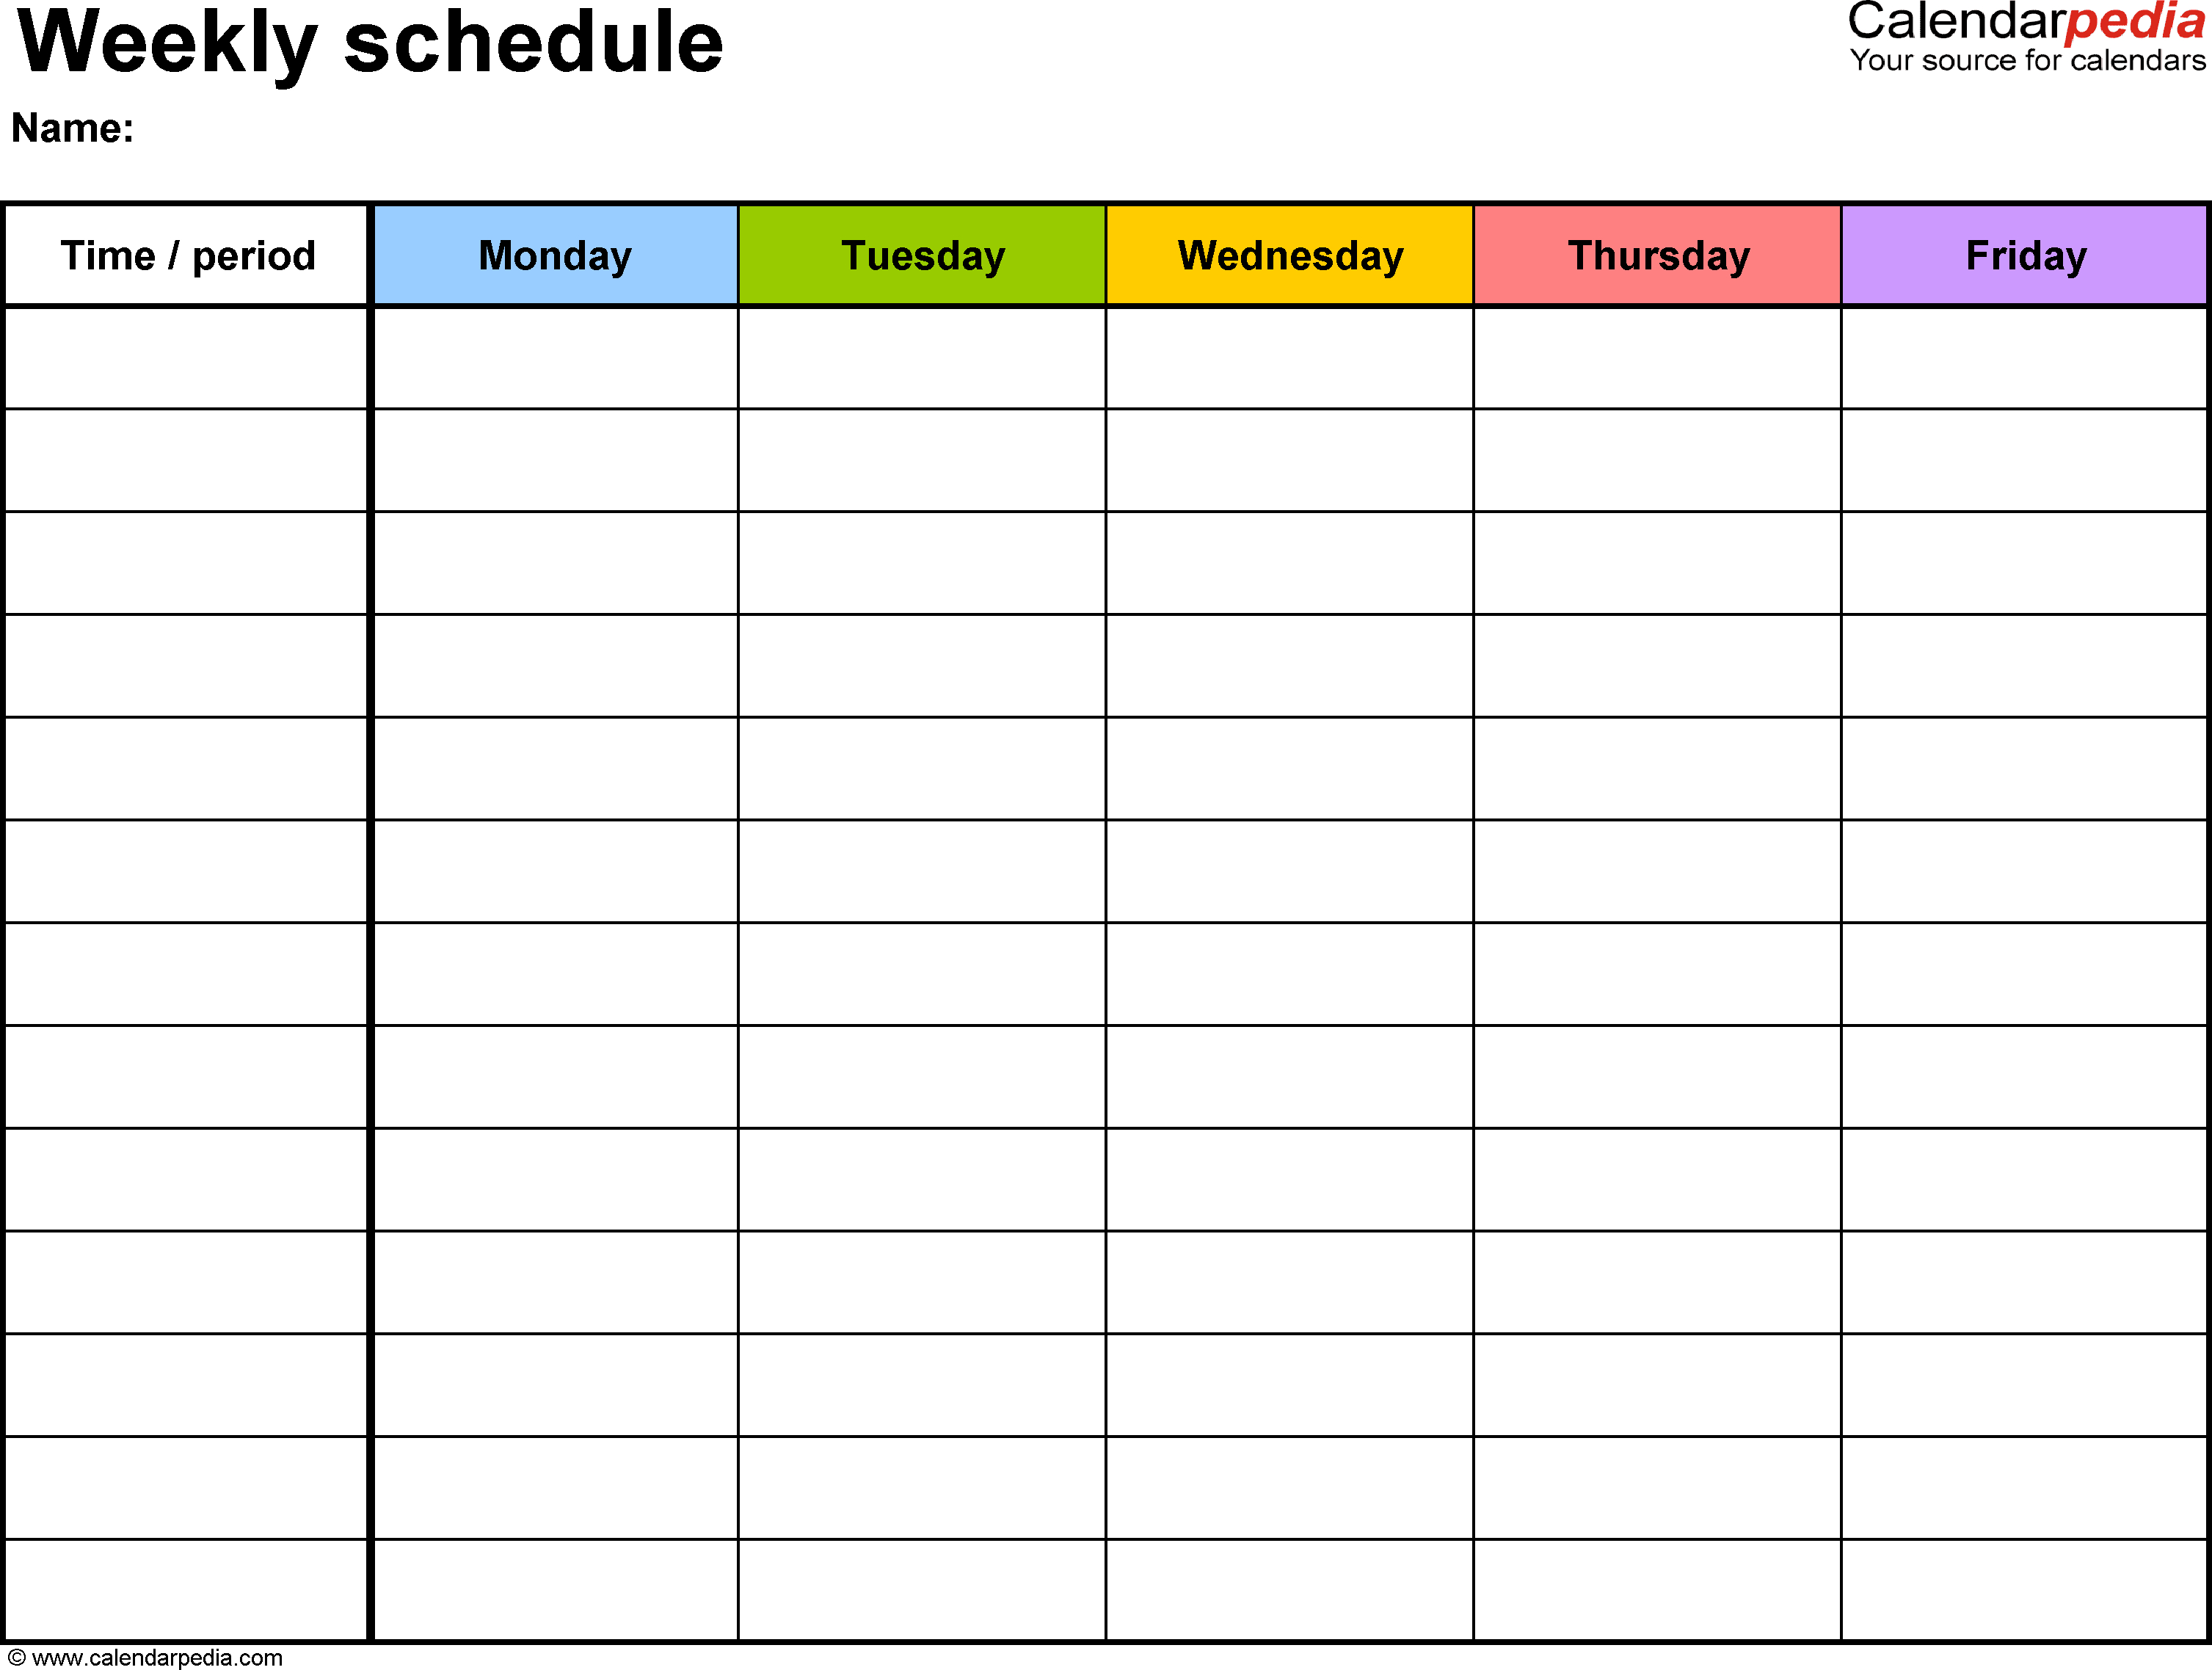 Weekly Schedule Template For Word Version 1: Landscape, 1 intended for 7 Day Weekly Calendar Template